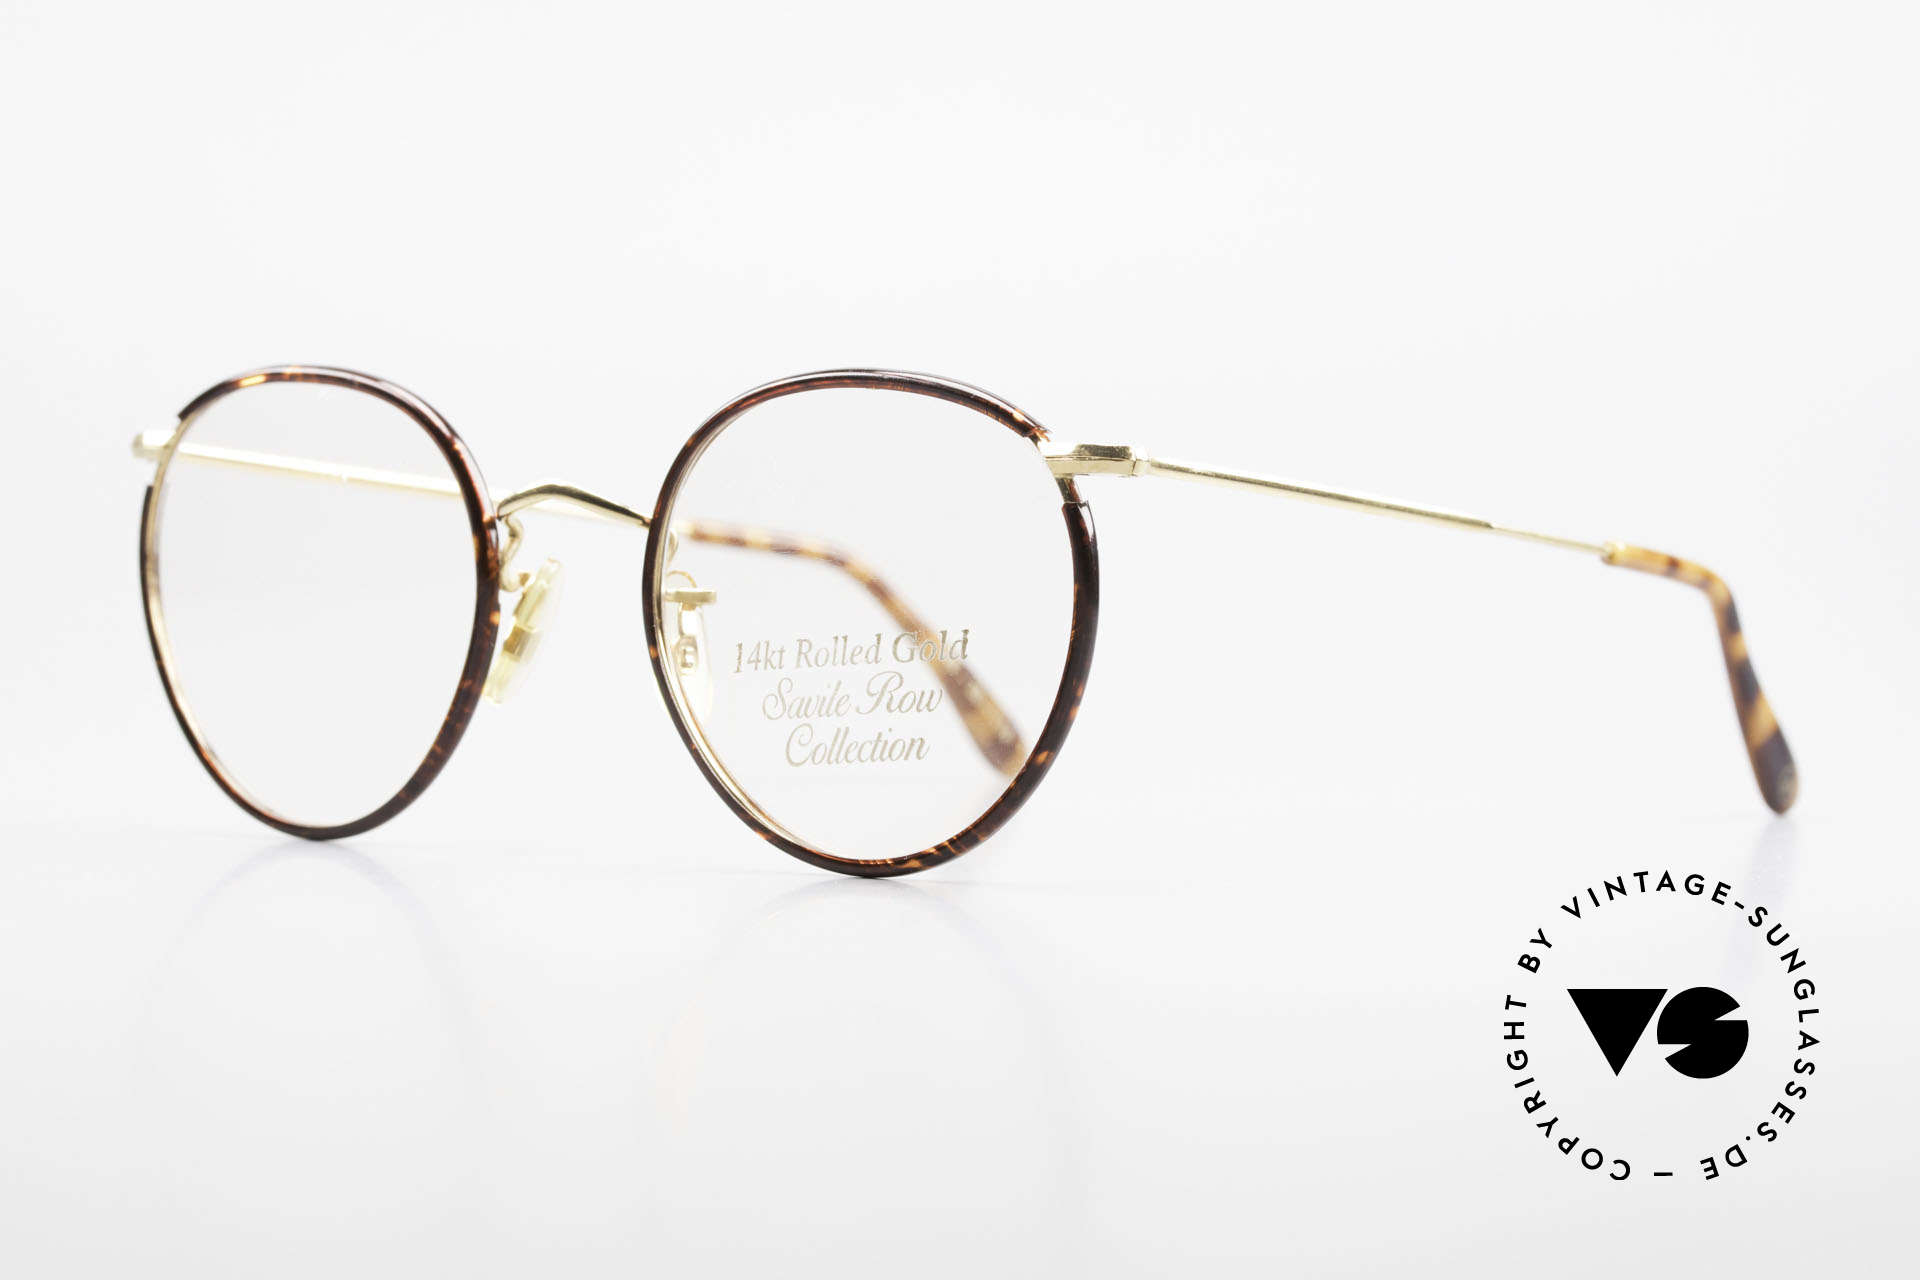 Savile Row Panto 49/20 Johnny Depp Glasses Panto, finest manufacturing (rolled gold); made in the UK, Made for Men